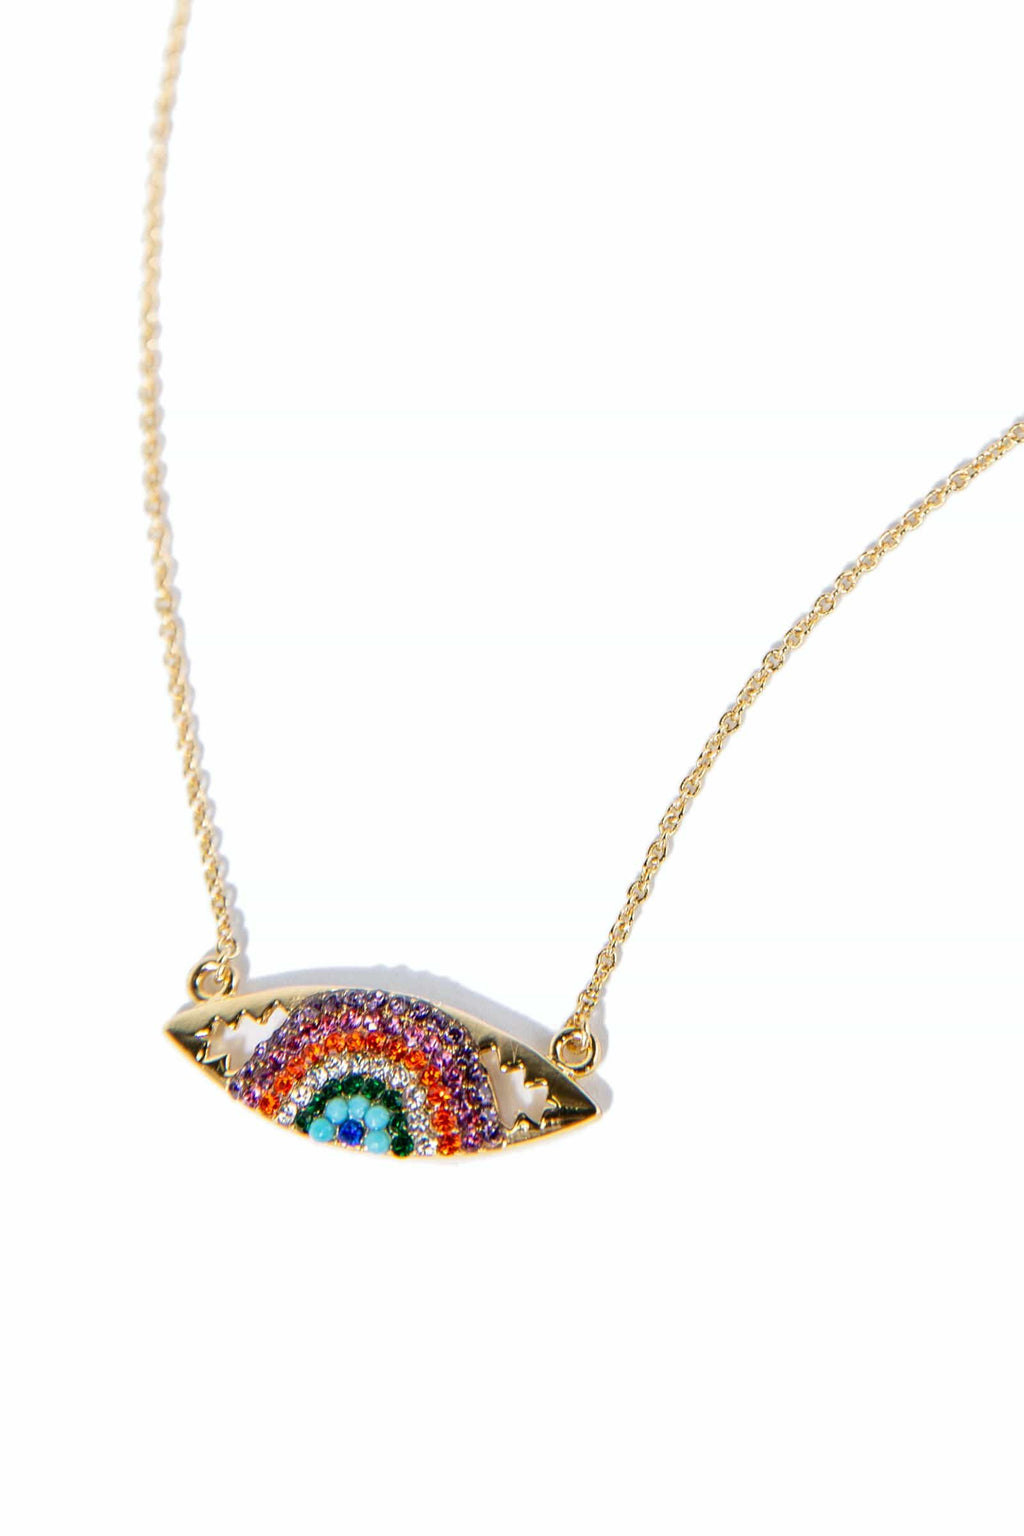 Rainbow Vision Necklace